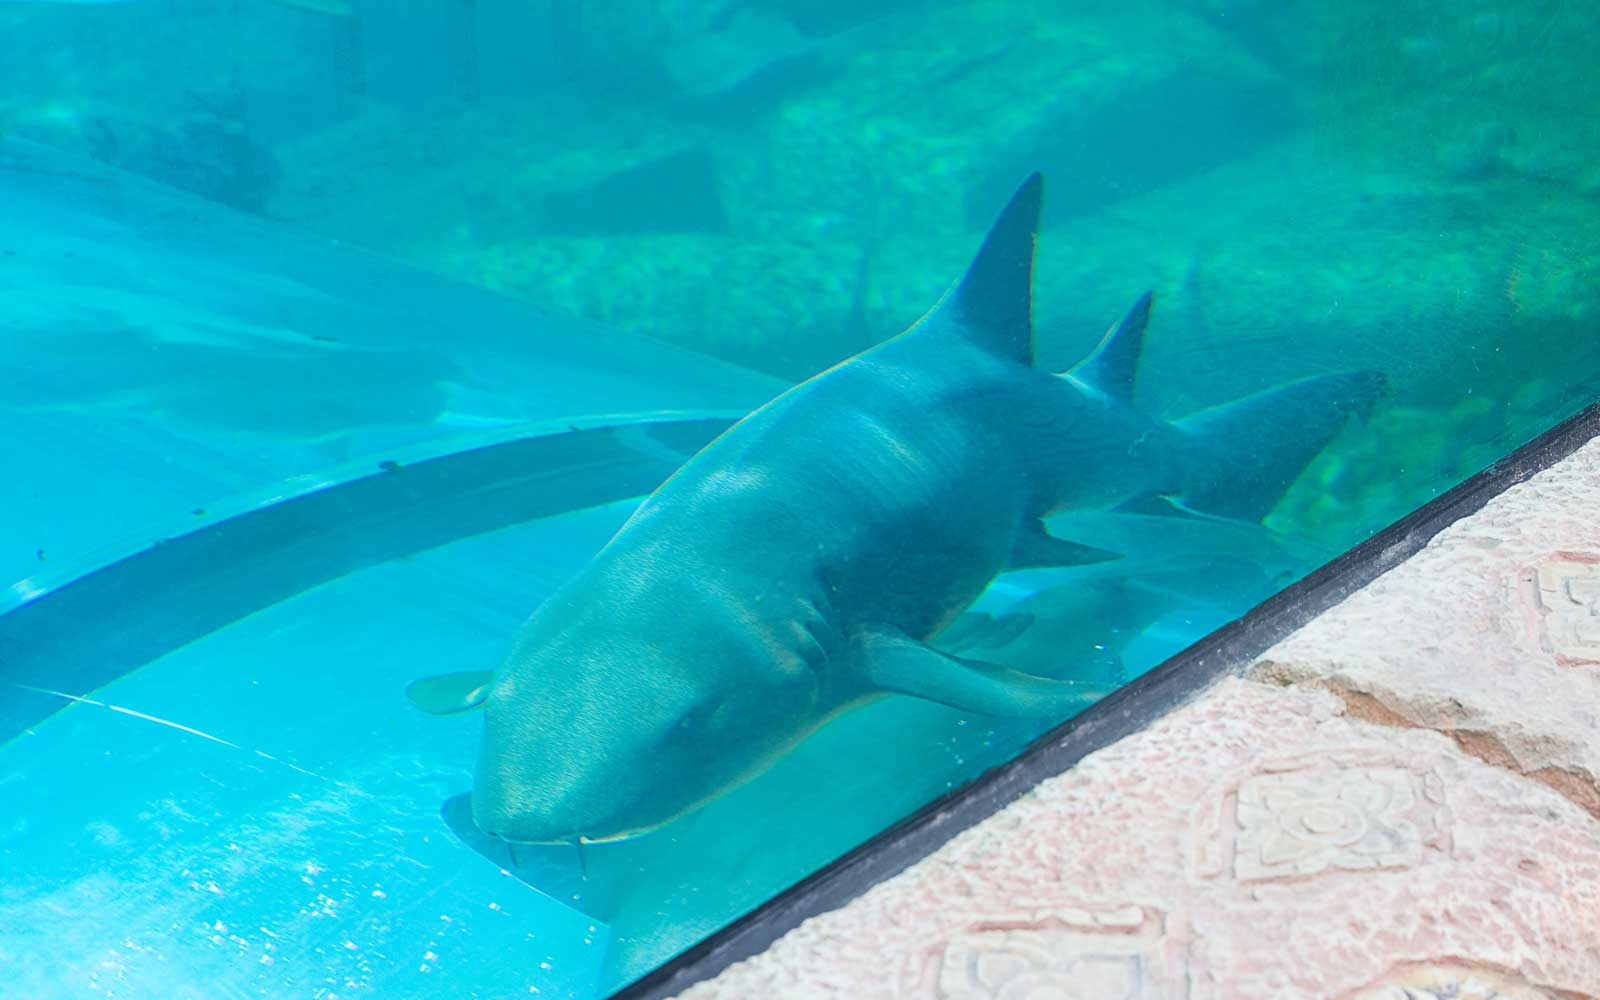 This Water Slide Goes Through a Shark Tank